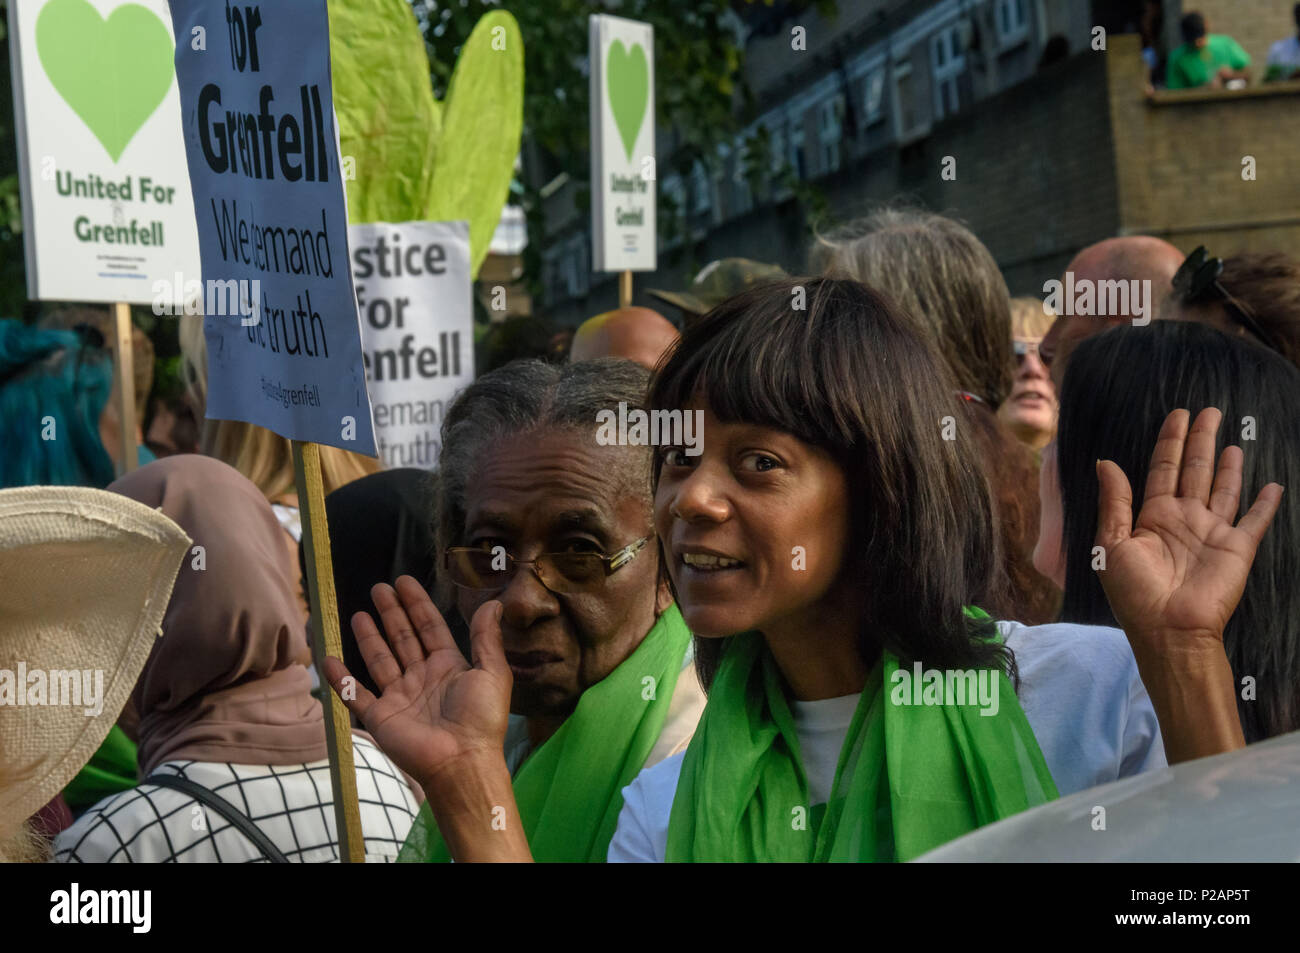 London, UK. 14th June 2018. A community associatin leader poses for the camer as thousands line up to walk in silence from close to Grenfell Tower remembering the victims of the disaster on the first anniversary of the disastrous fire which killed 72 and left survivors traumatised. Many of those made homeless by the fire are still in temporary accomodation a year later despite promises mde by Theresa May and Kensington & Chelsea council, who many fell have failed the local community both before and after the fire. They say had they been listened to and respected Grenfell would not have happene - Stock Image